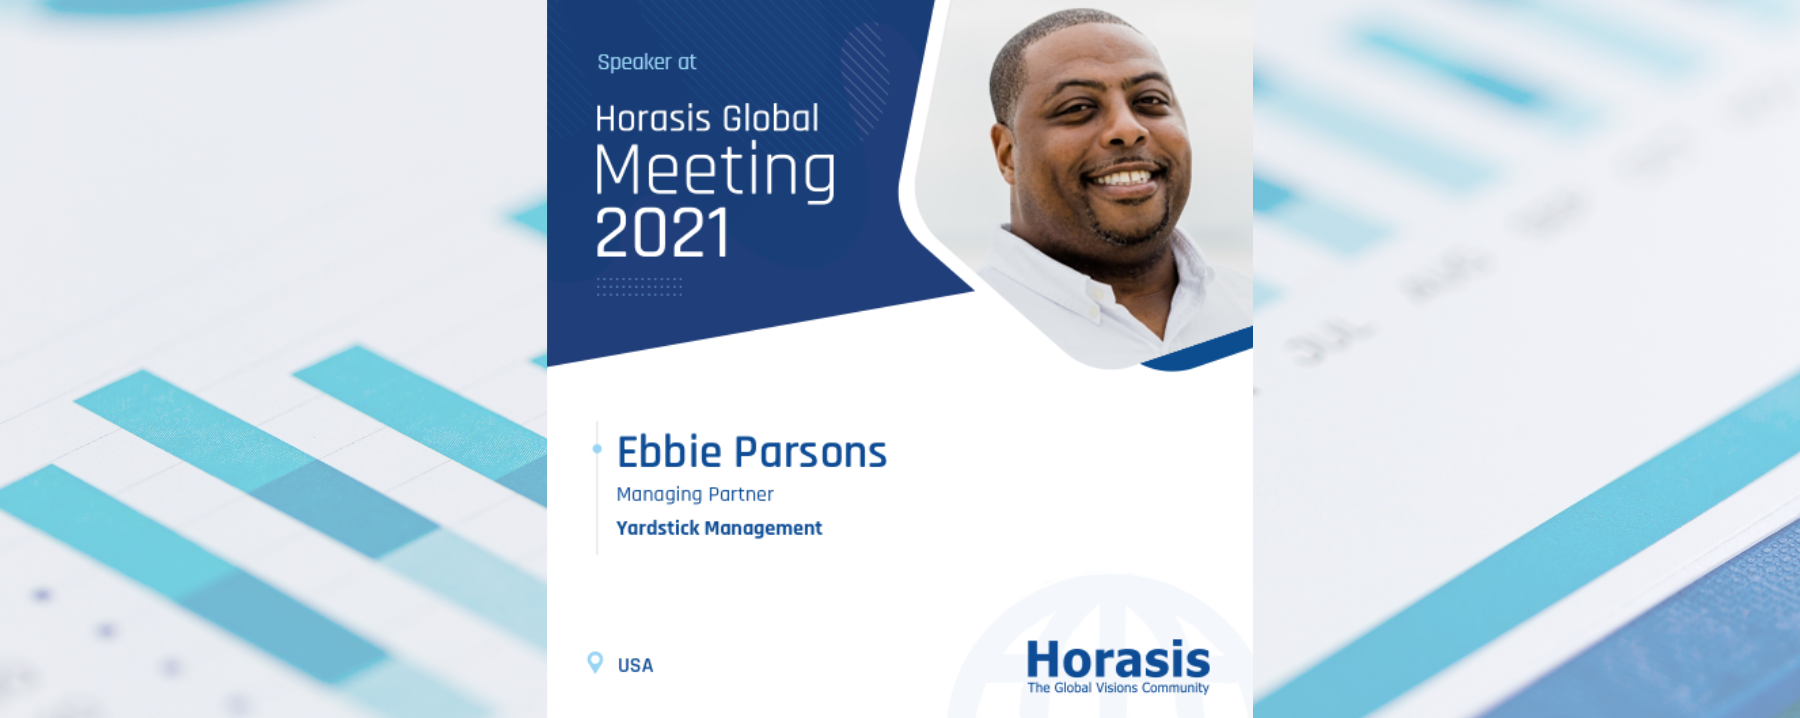 Horasis Global Meeting: Fostering Shared Humanity